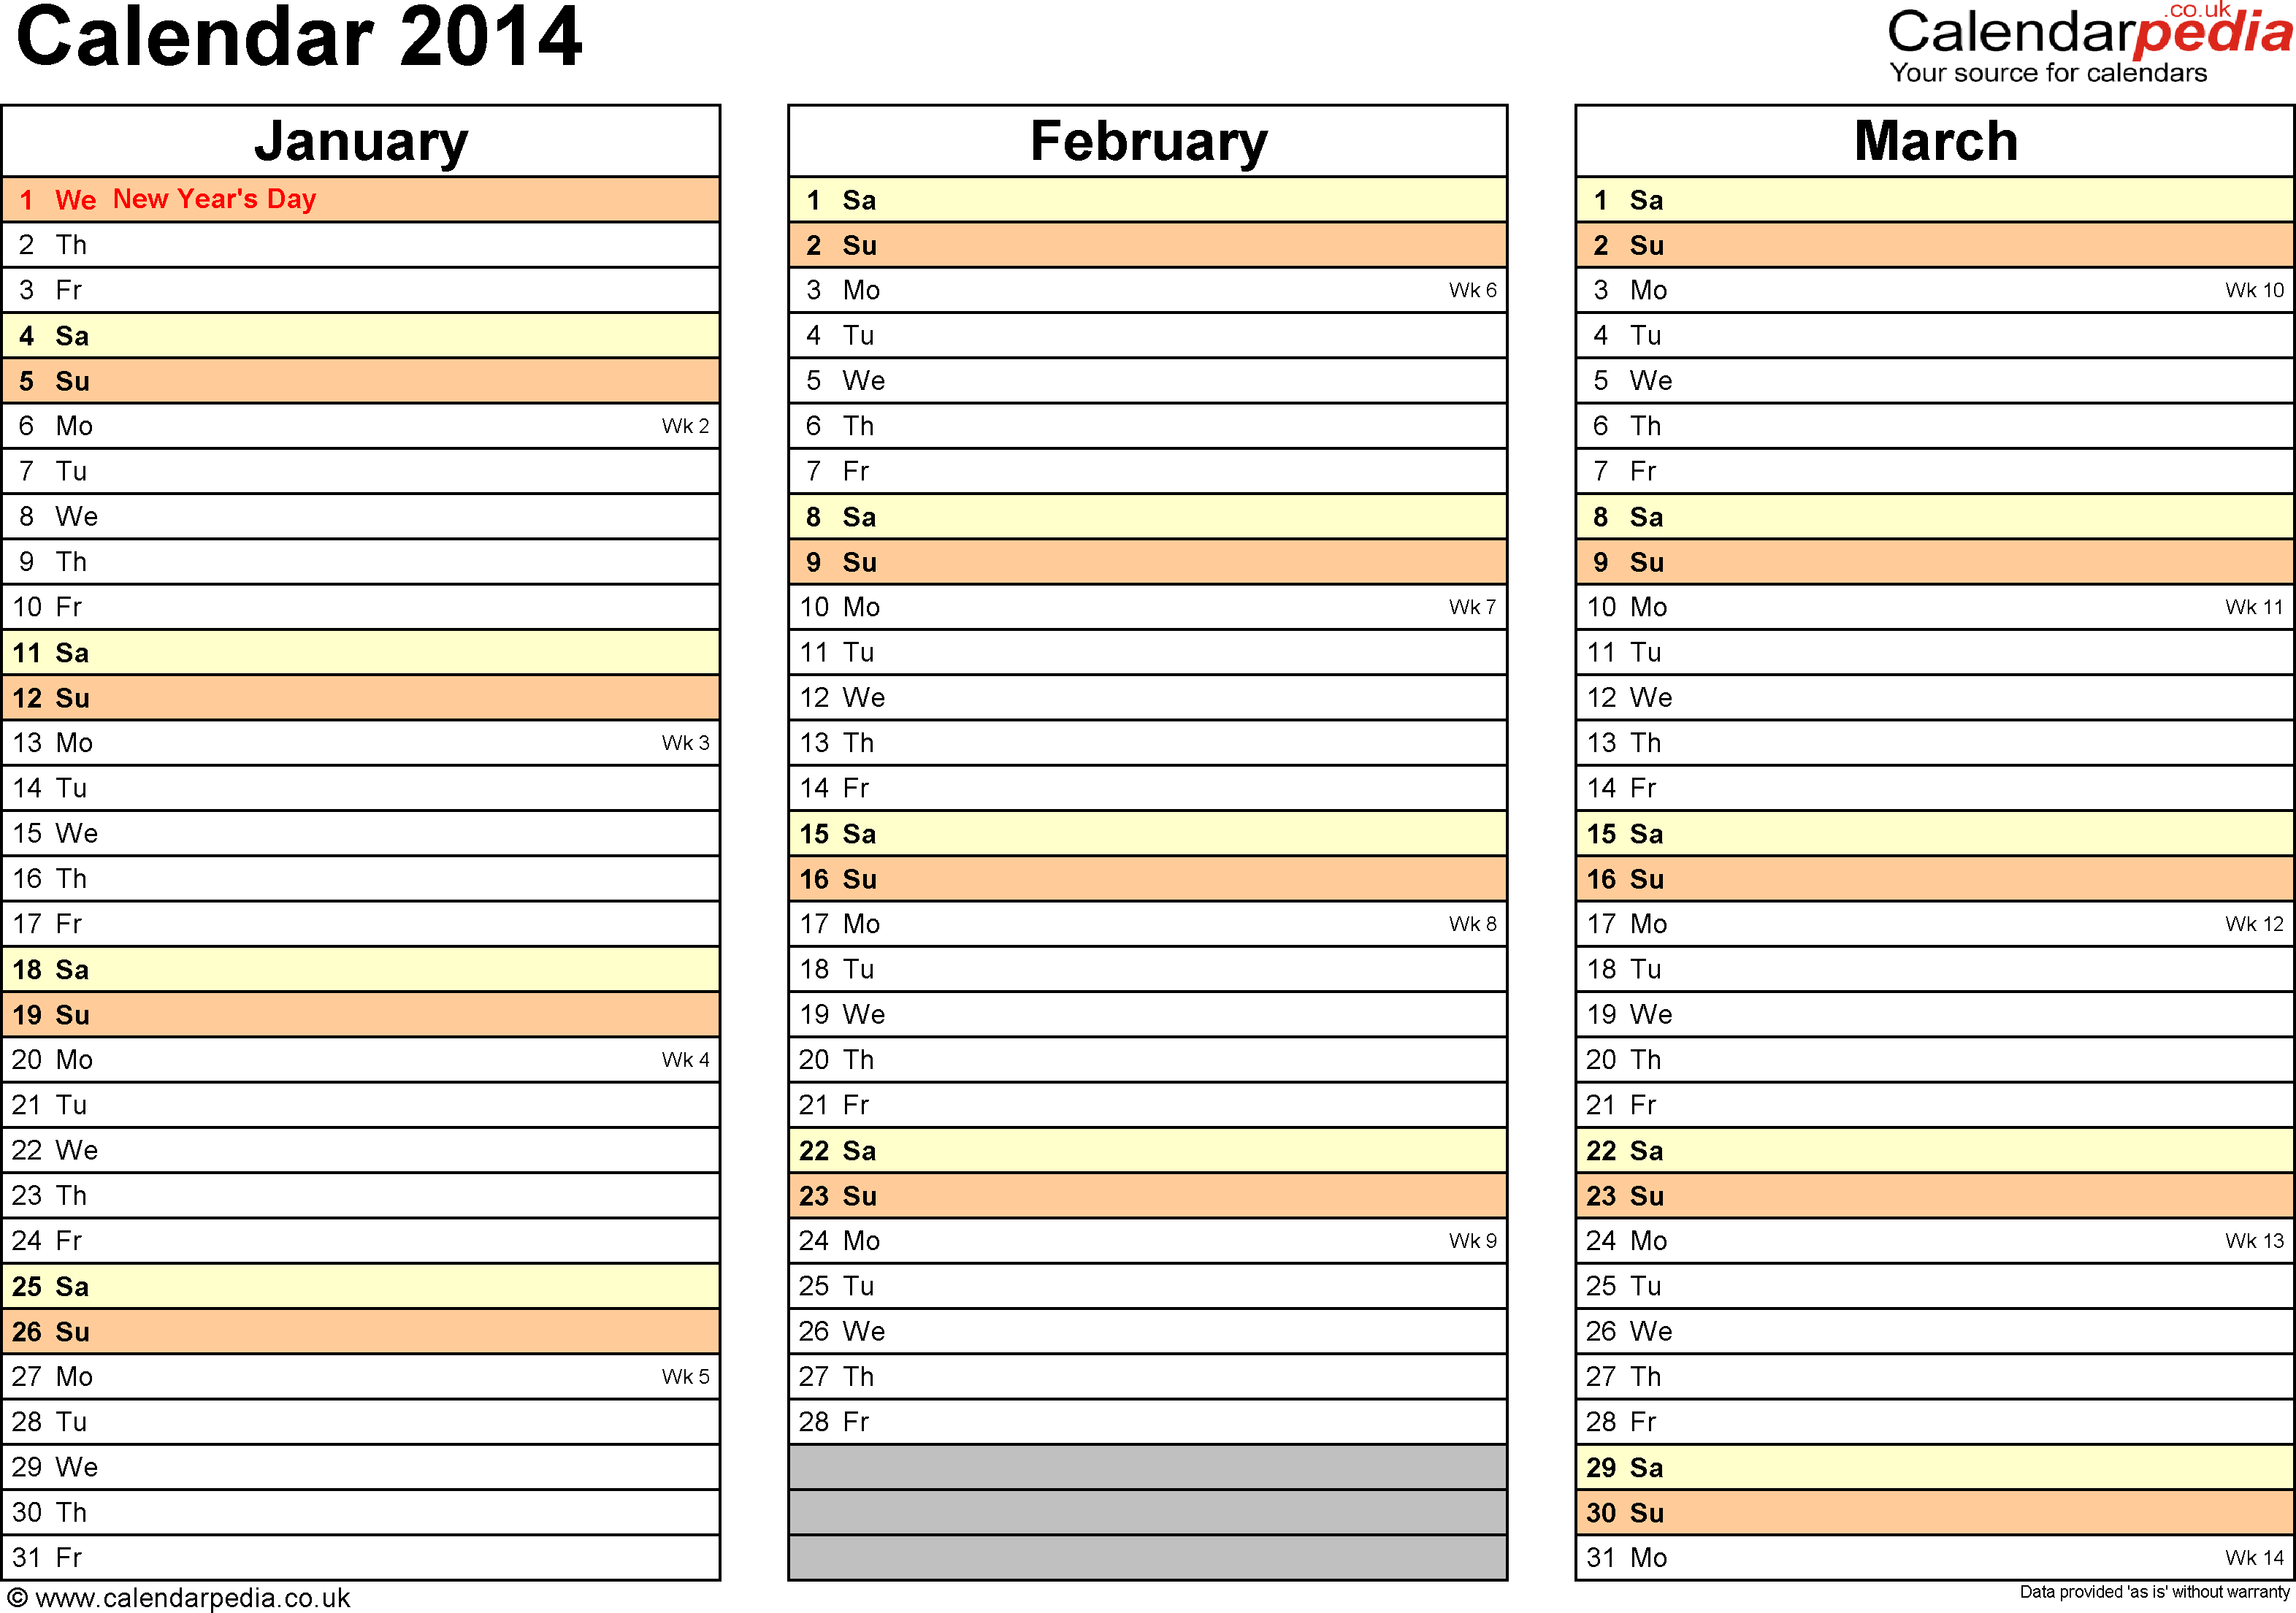 Template 5: Yearly calendar 2014 as Word template, landscape orientation, 4 pages, months horizontally, days vertically, with UK bank holidays and week numbers